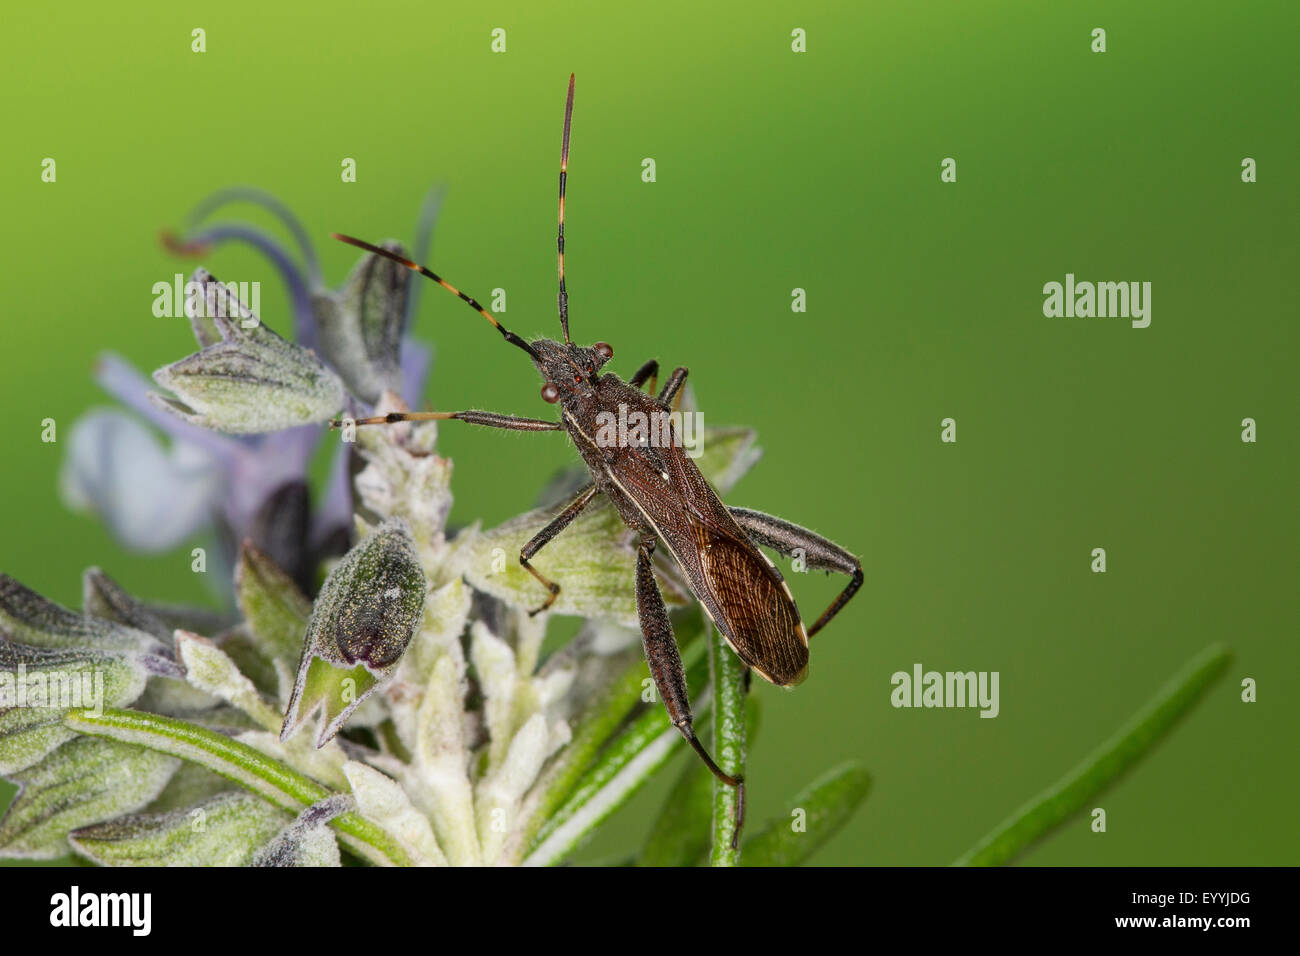 Broad-headed Bug (Camptopus lateralis), sitting on a flower, Germany - Stock Image